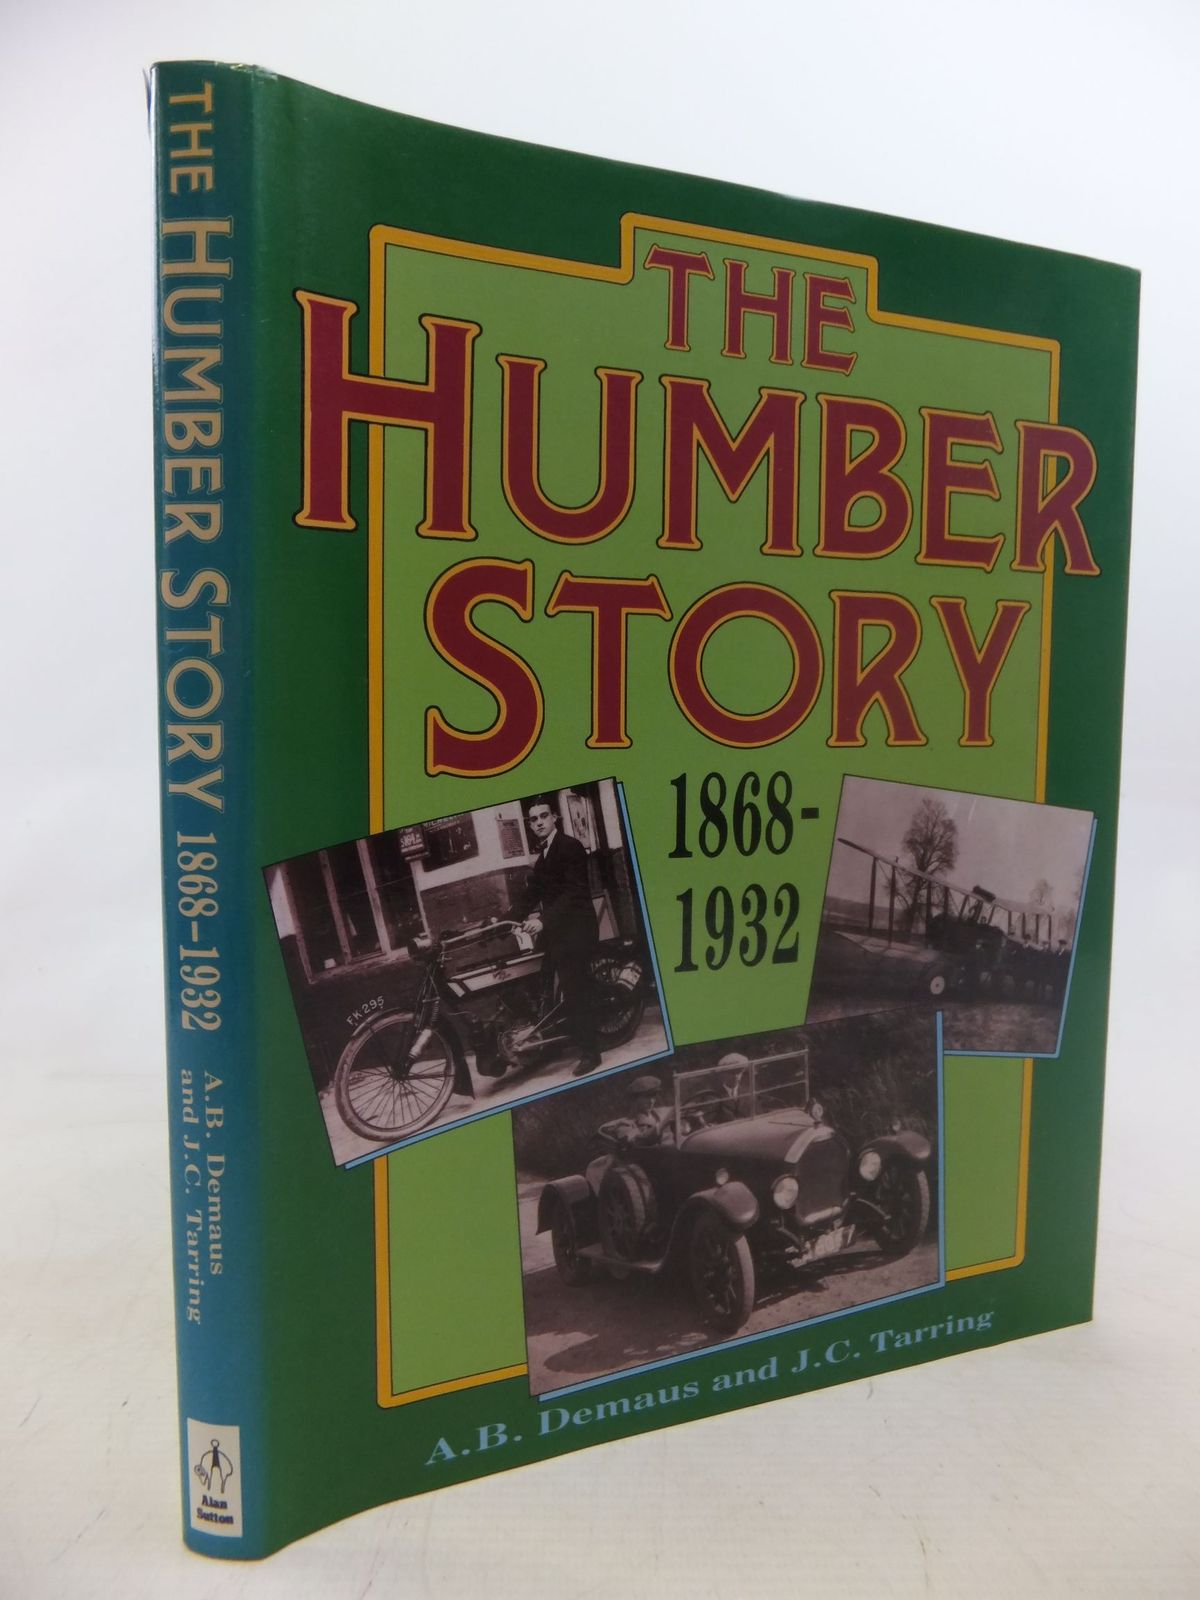 Photo of THE HUMBER STORY 1868-1932 written by Demaus, A.B.<br />Tarring, J.C. published by Alan Sutton (STOCK CODE: 1712207)  for sale by Stella & Rose's Books